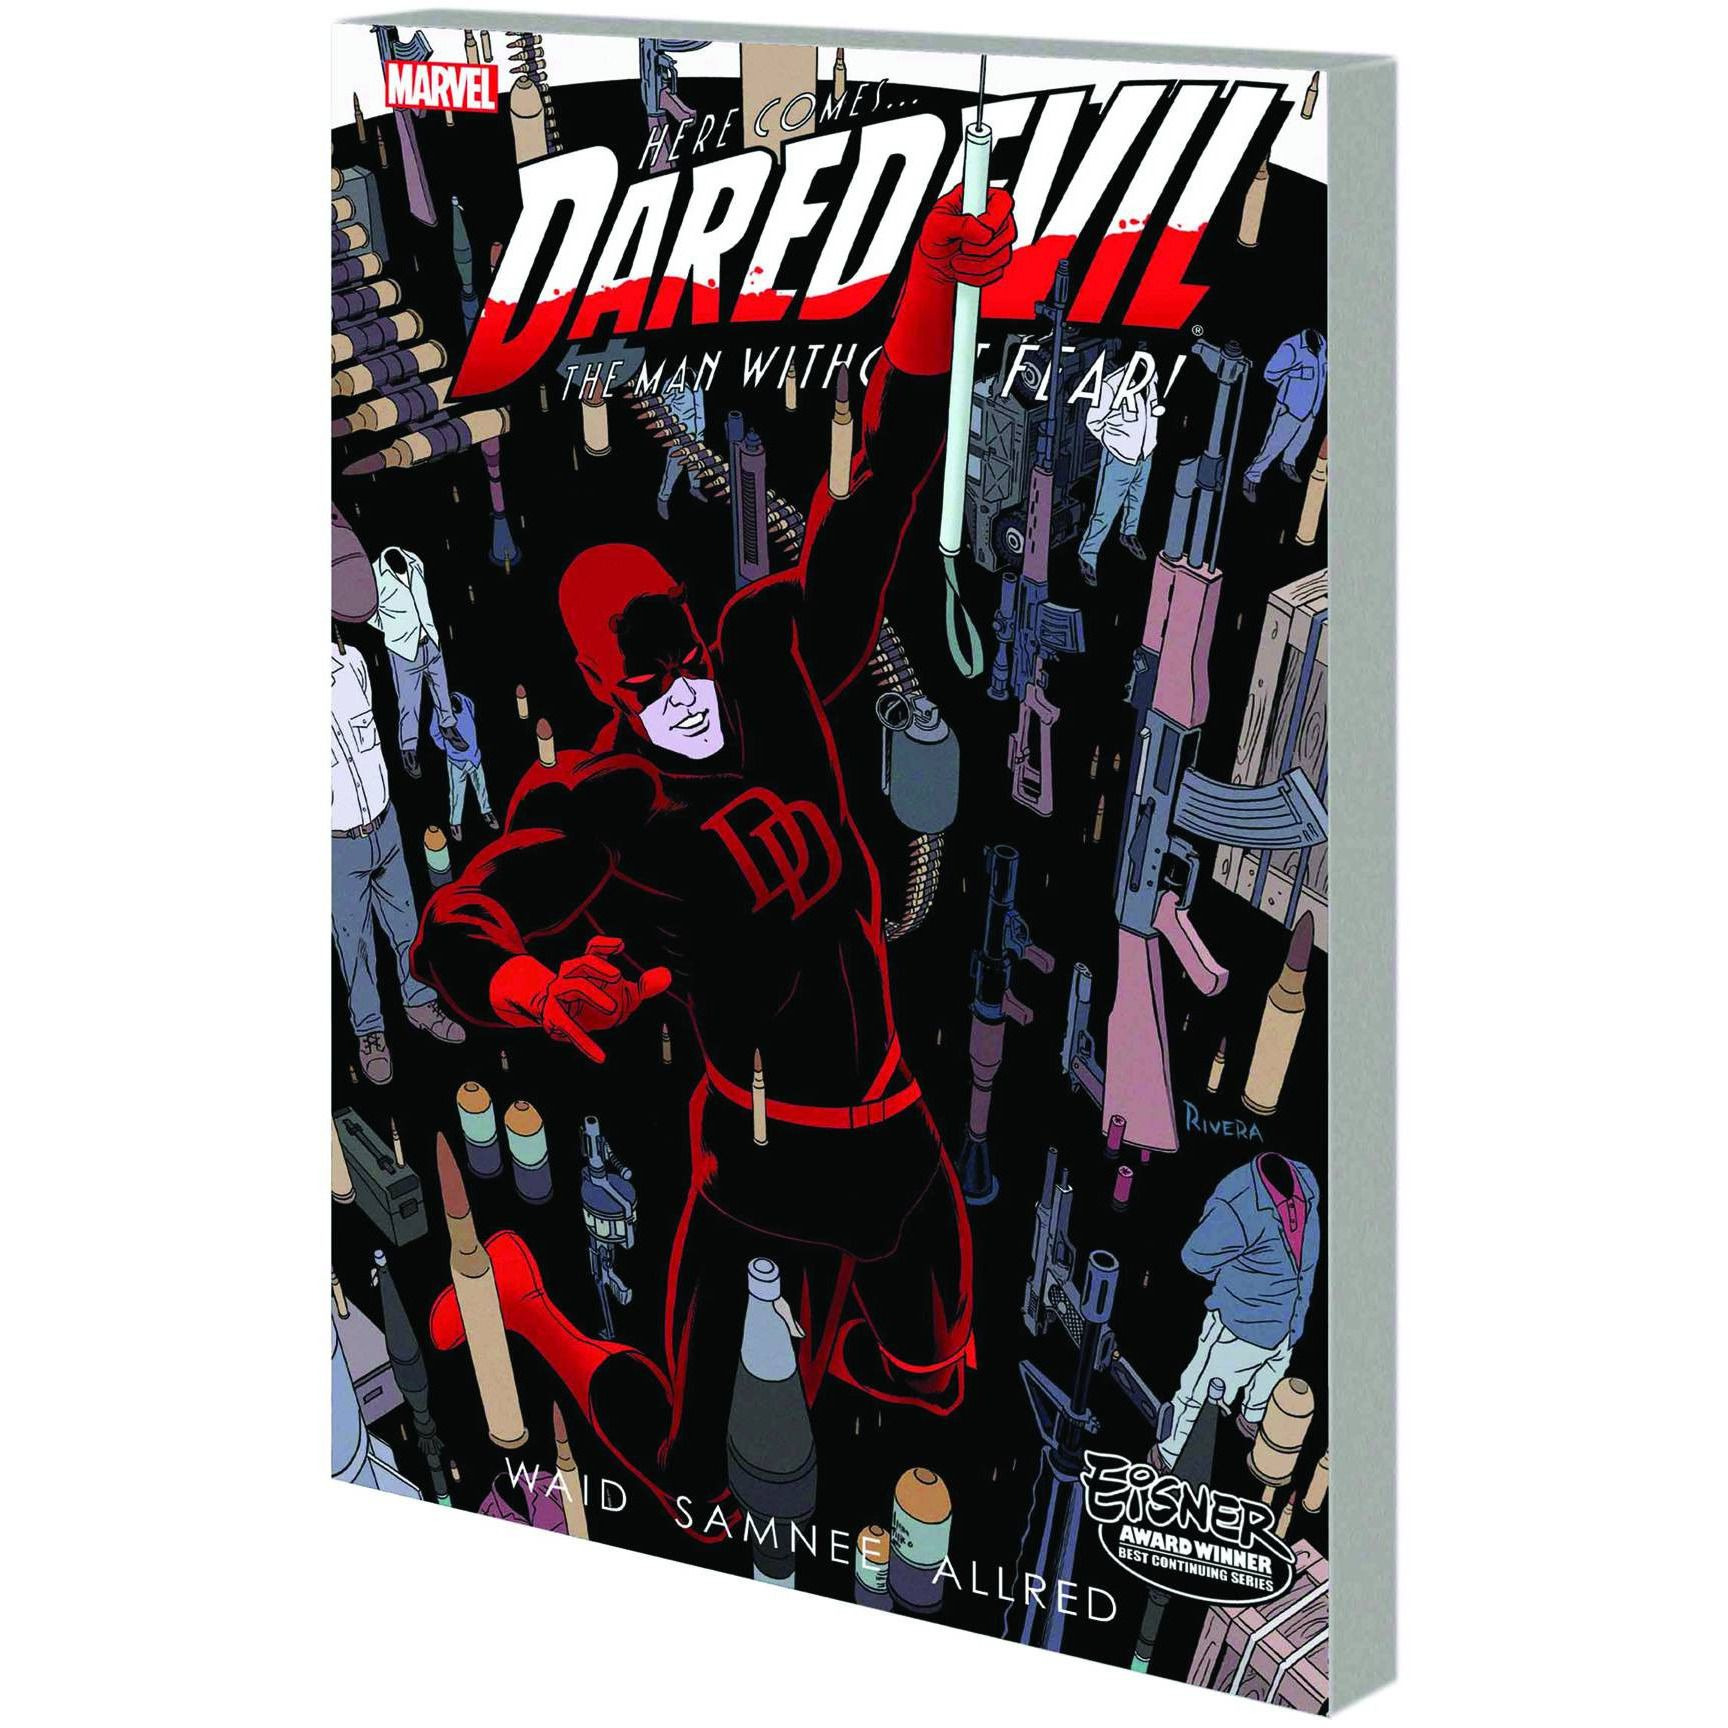 Daredevil By Mark Waid TP Vol 04 Uncanny!